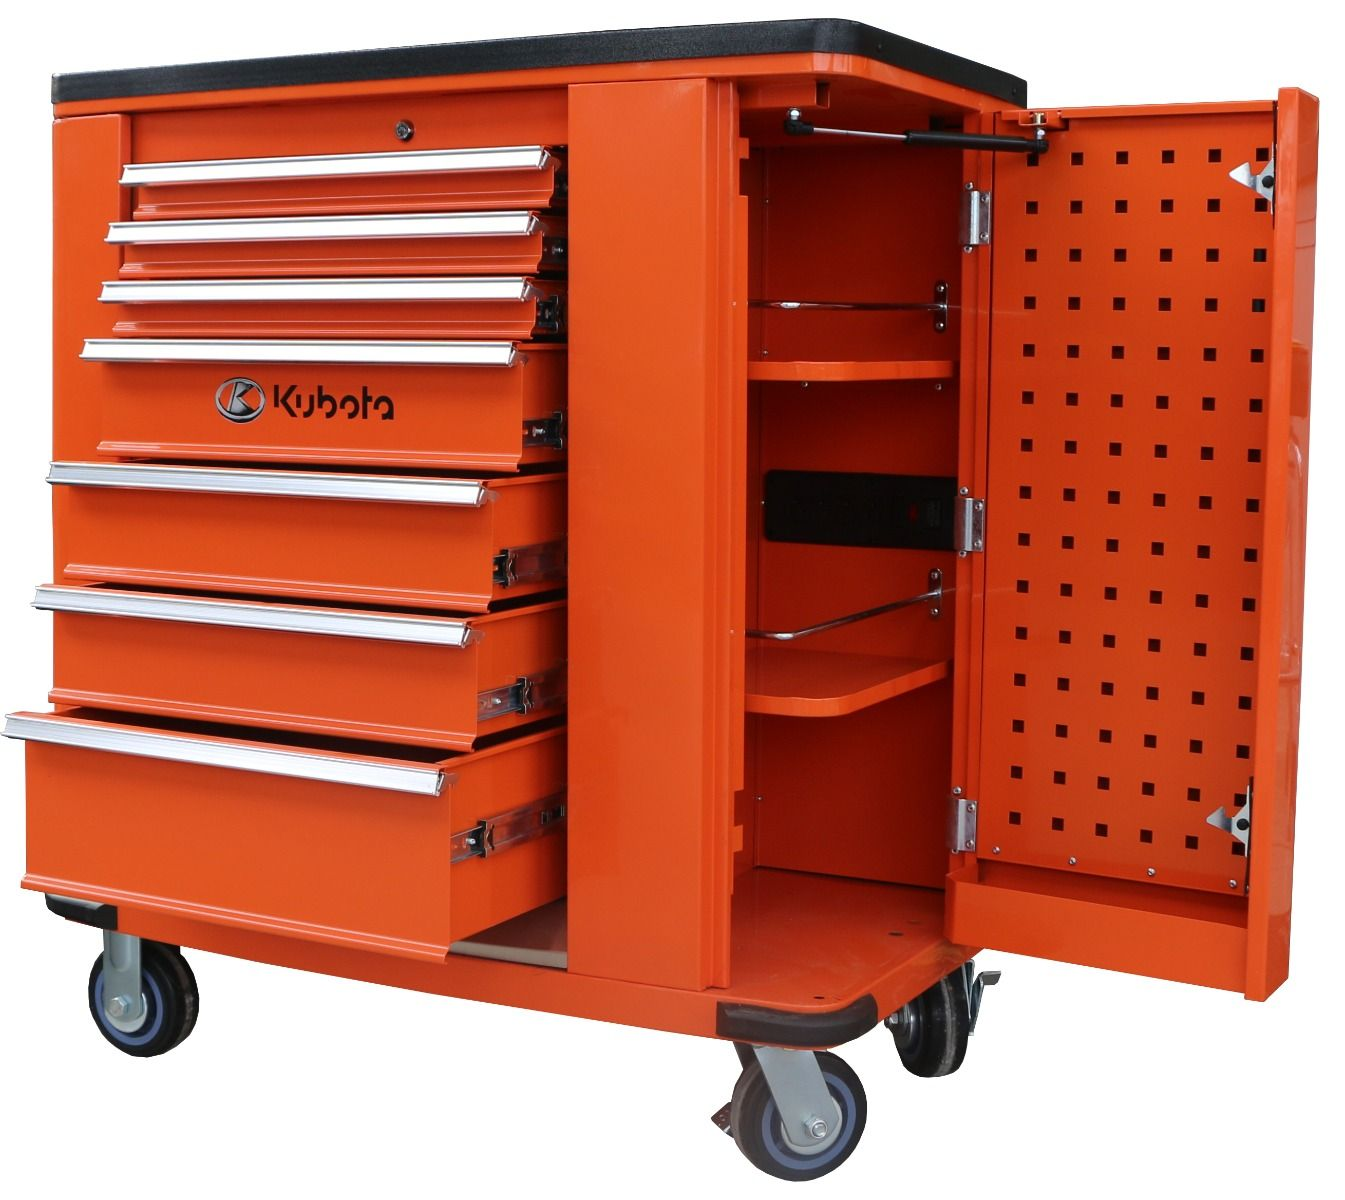 Kubota Professional rolling tool chest